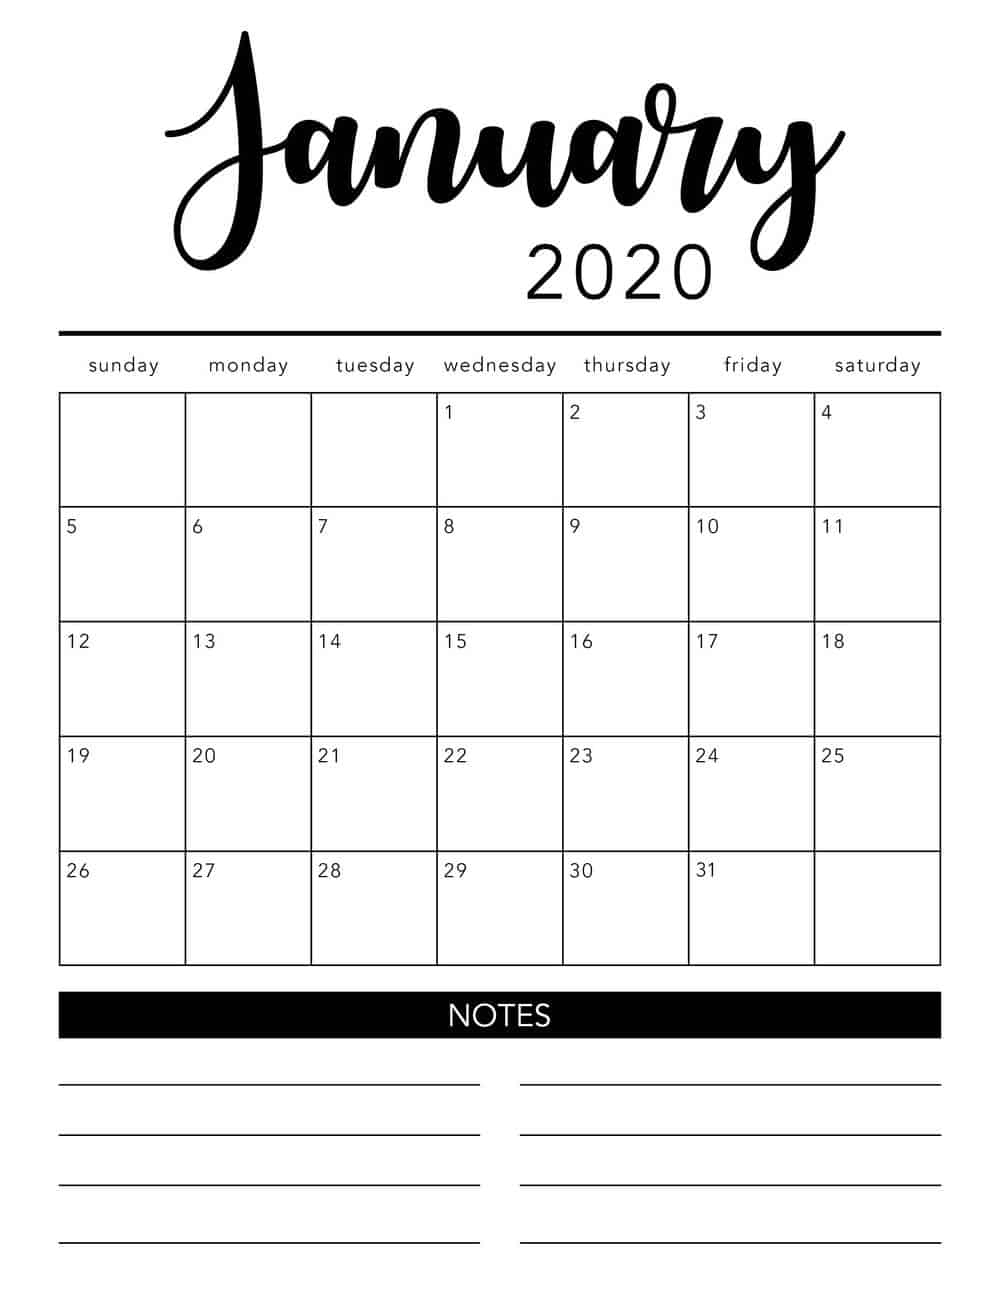 Calendar Template 2020 Ks2 | Free Calendar Template Example intended for Blank Monthly Calendar With Lines